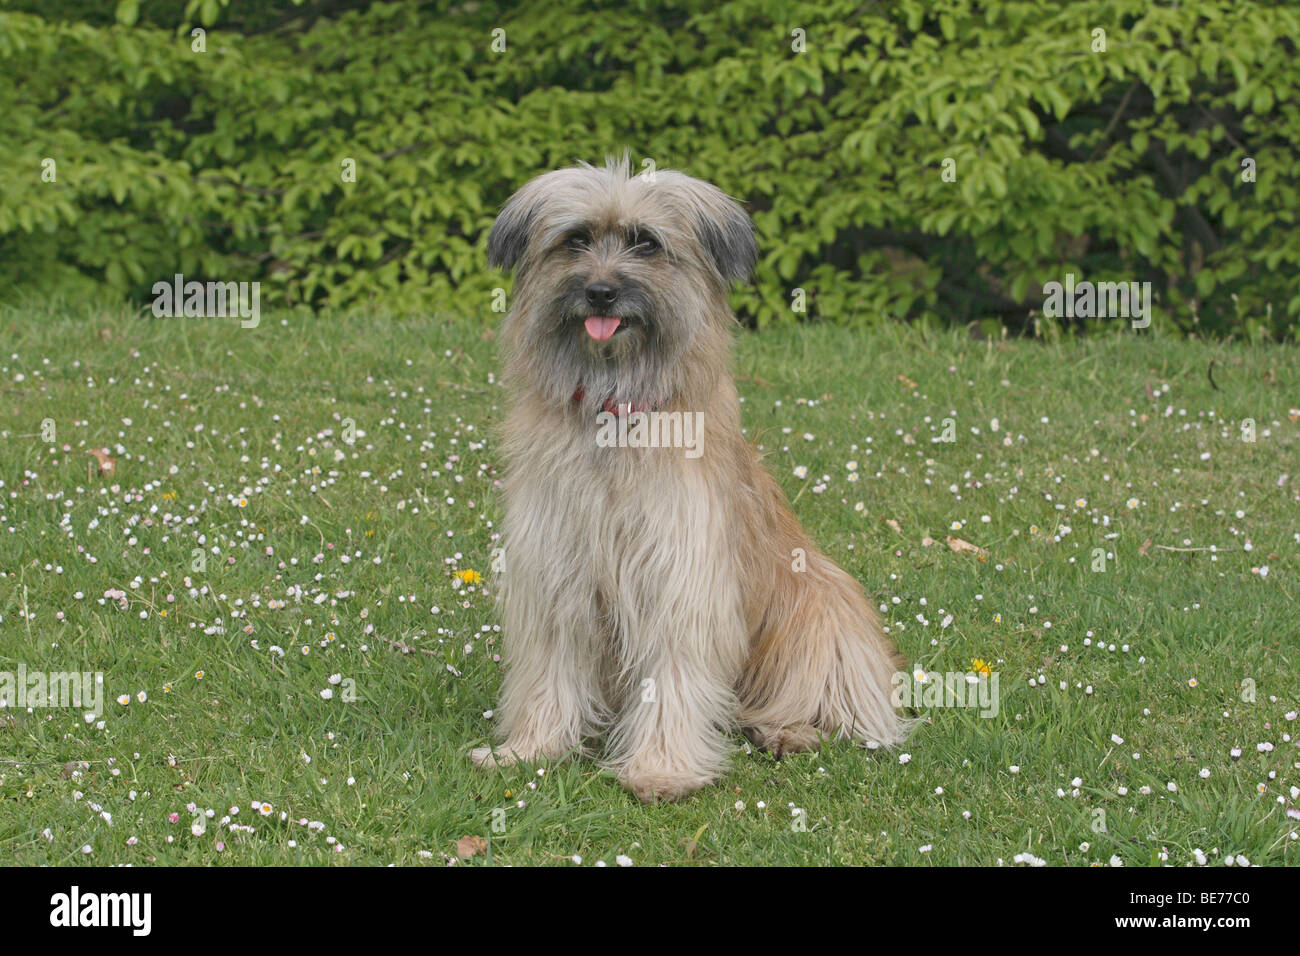 Pyrenean Shepherd, sitting on a lawn - Stock Image